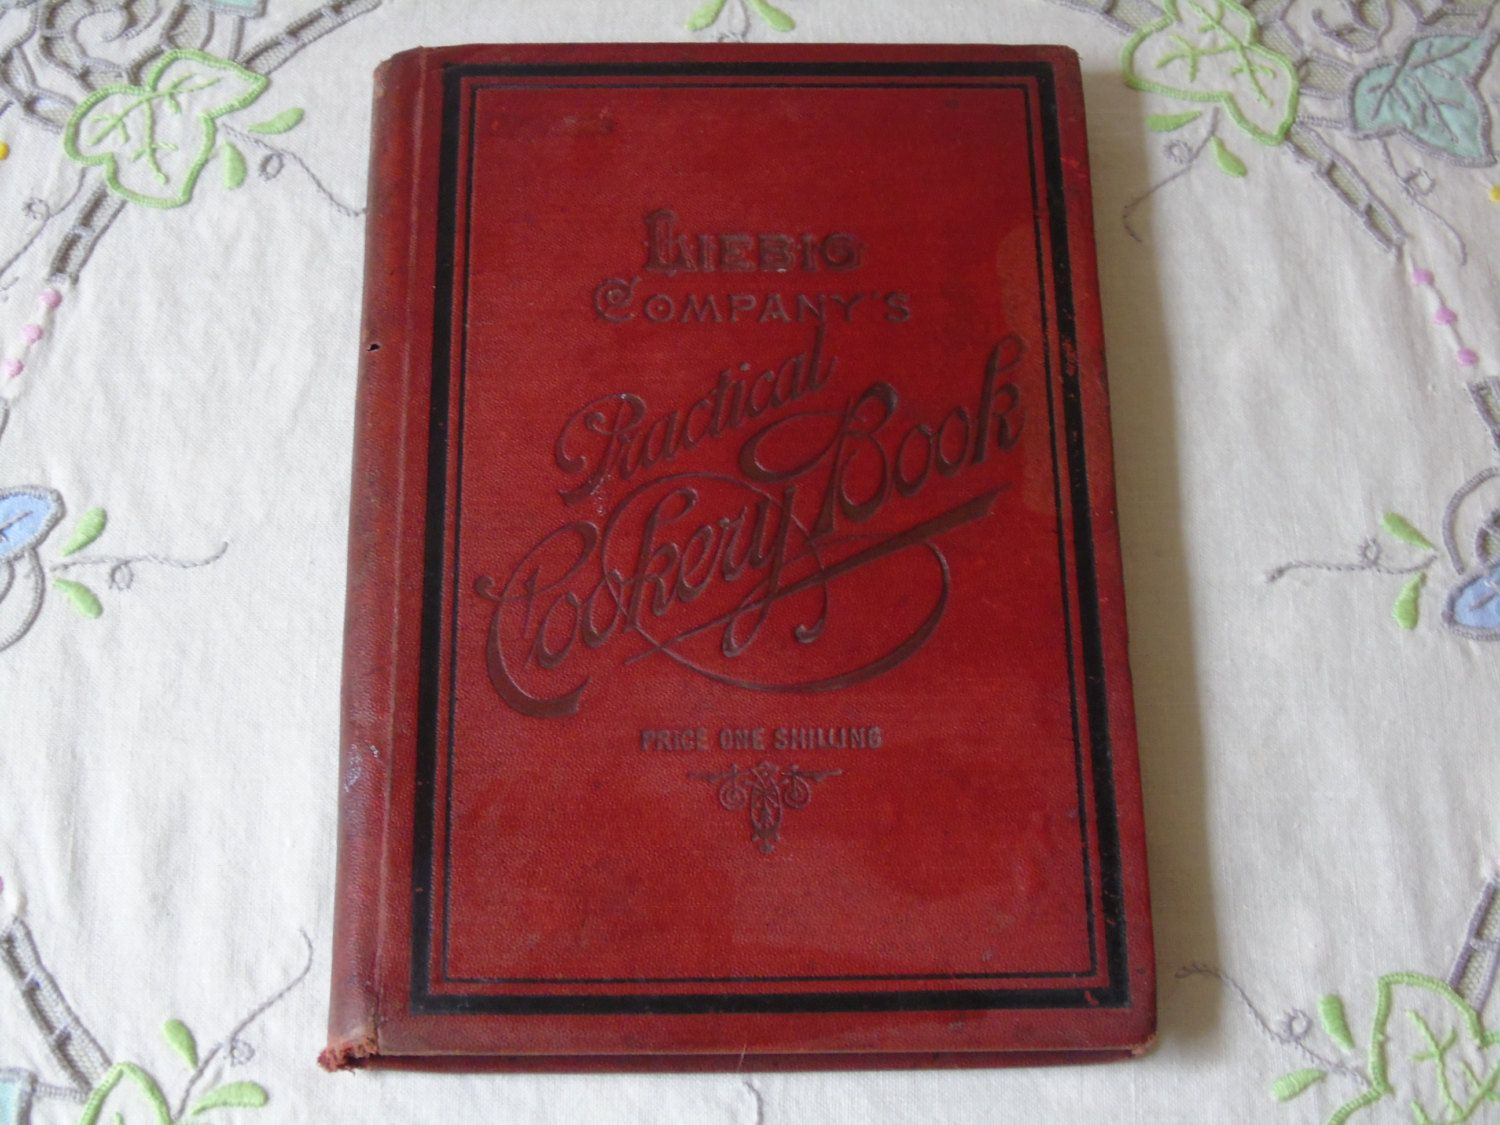 1893 Liebig Company's Practical Cookery Book Mrs H M Young - Antique Cookery…